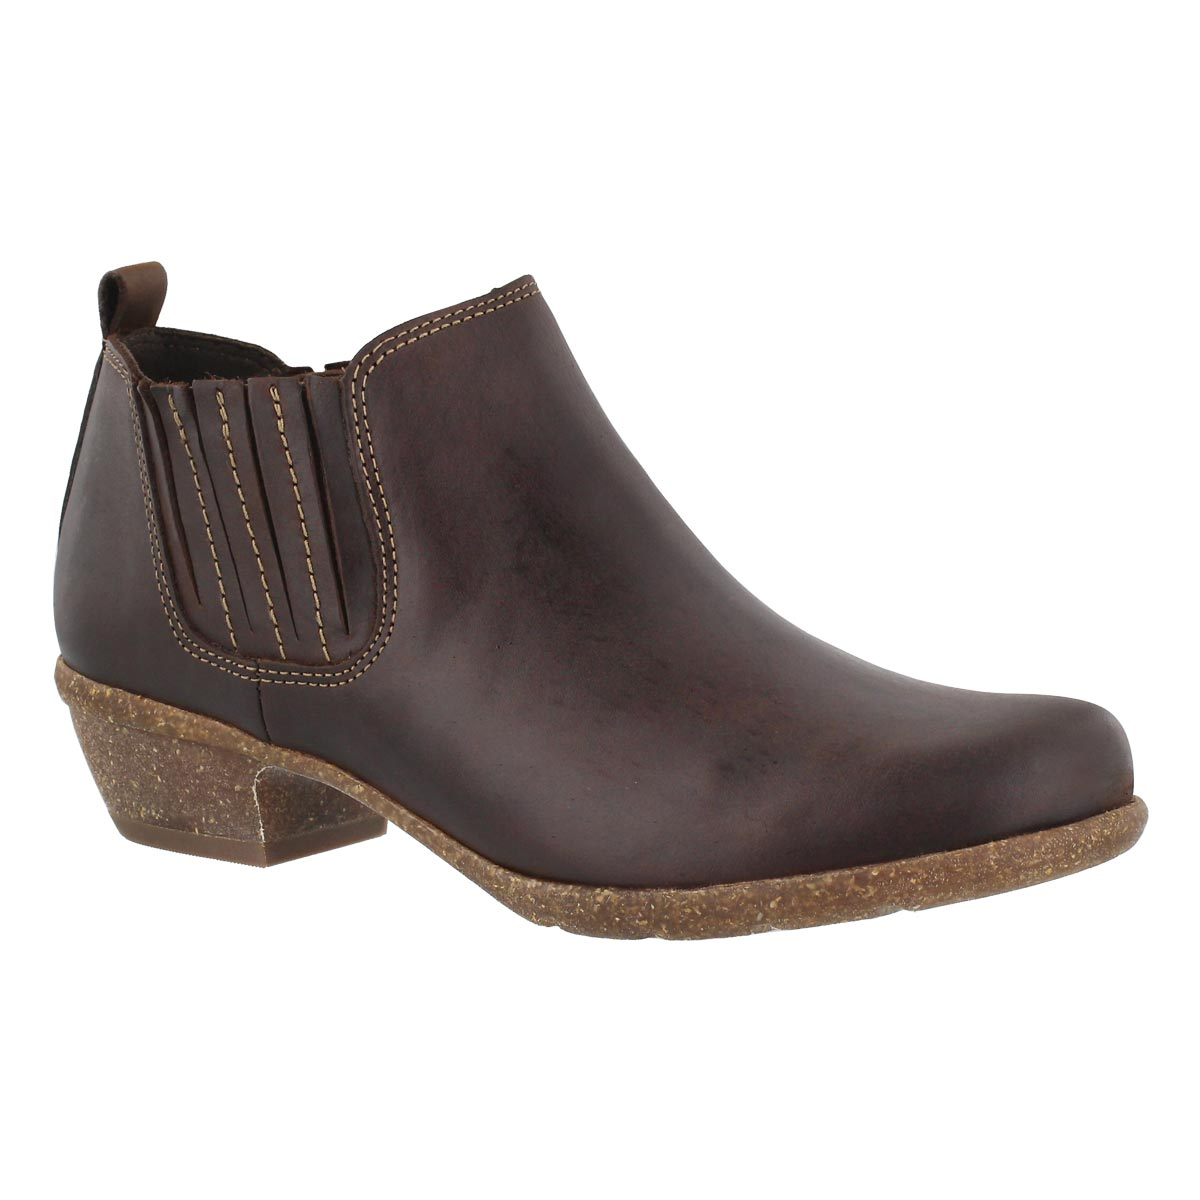 Lds Wilrose Jade brn slip on casual boot